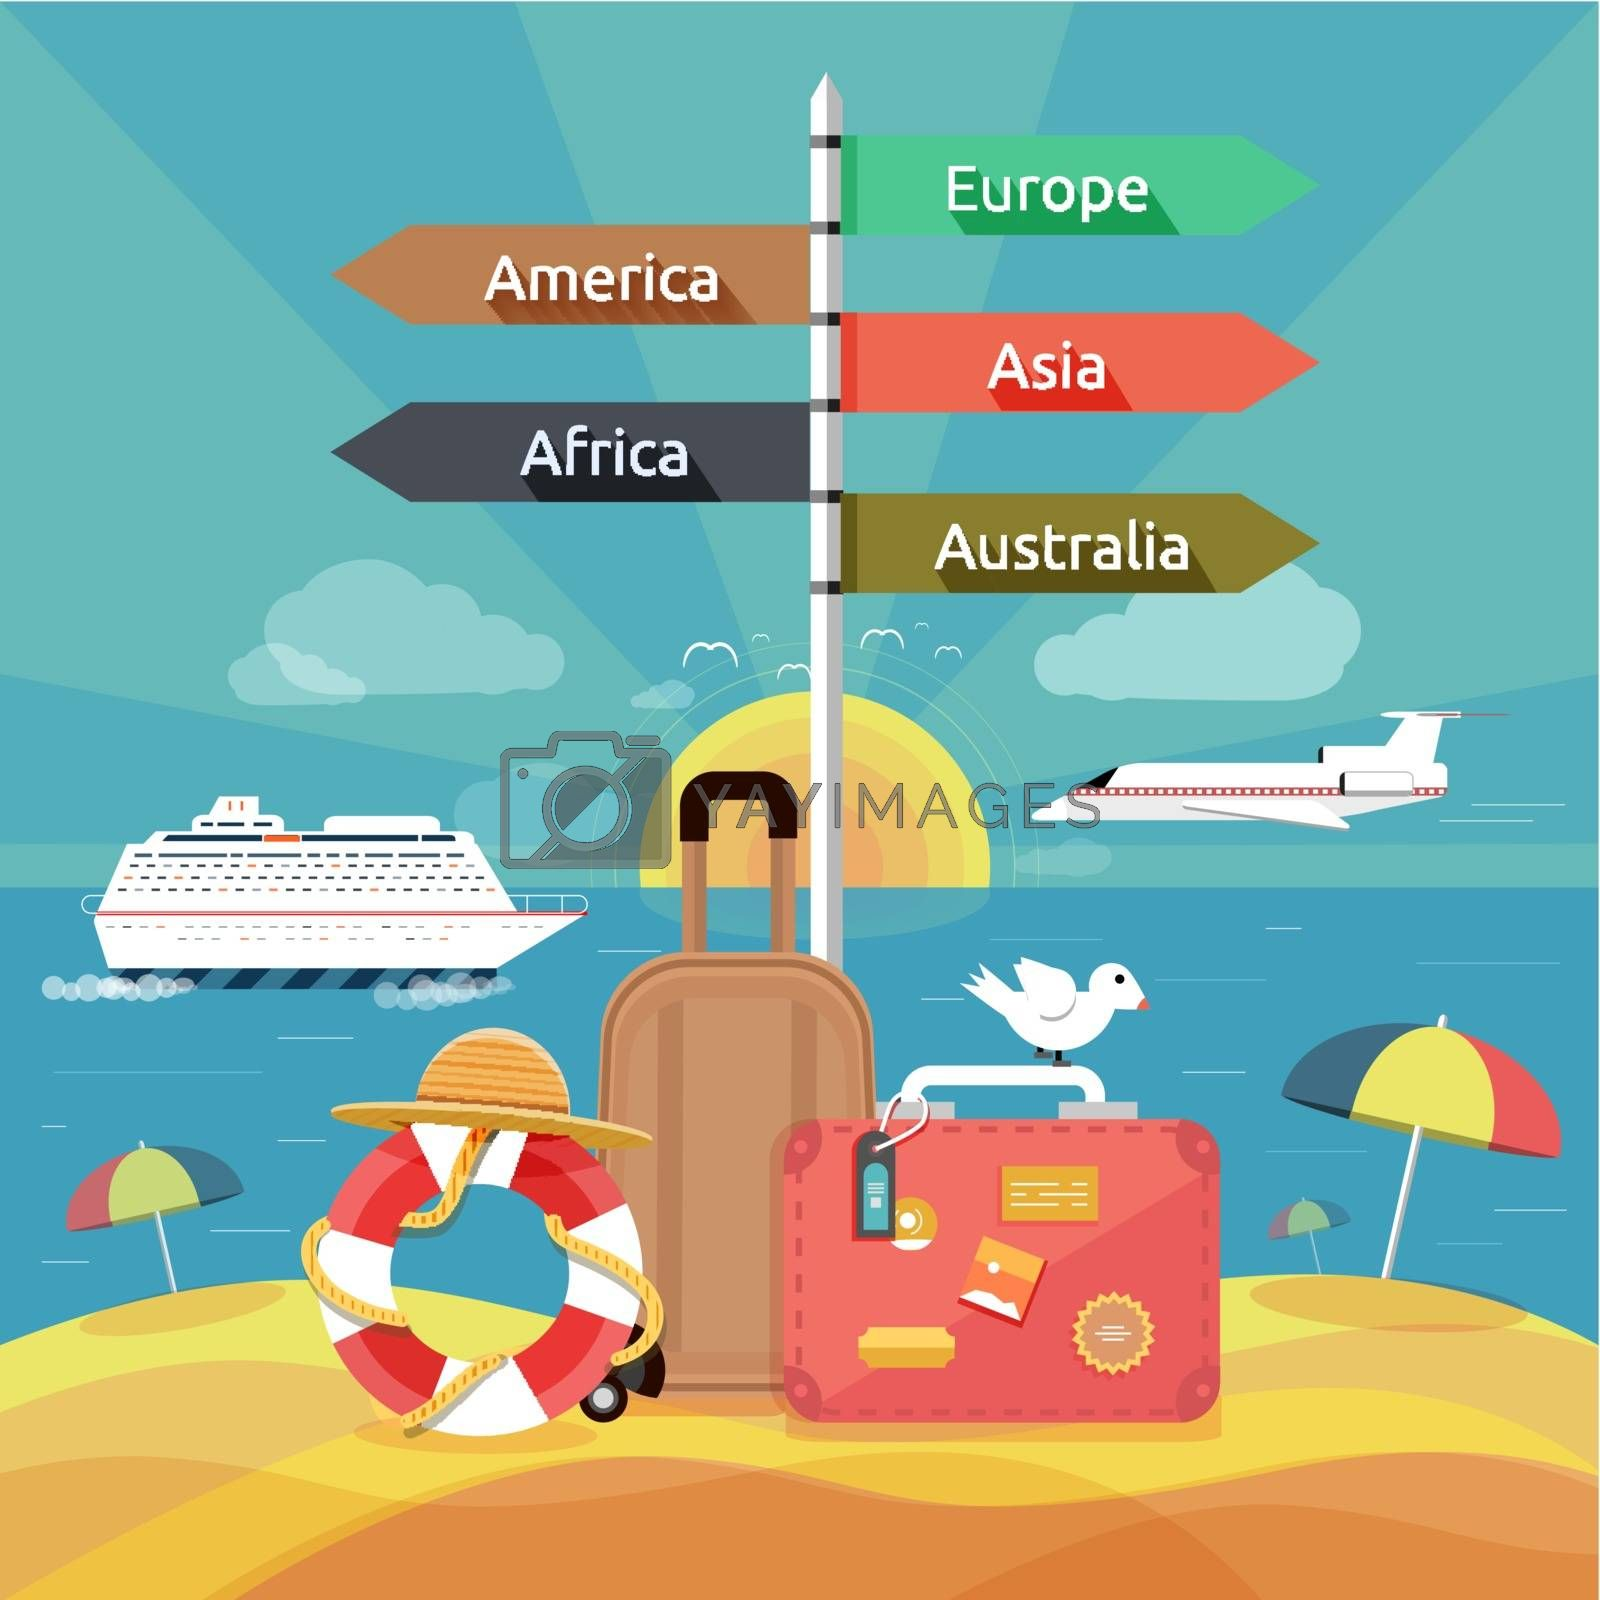 Icons set of traveling, planning a summer vacation, tourism and journey objects and passenger luggage in flat design. Different types of travel. Business travel concept